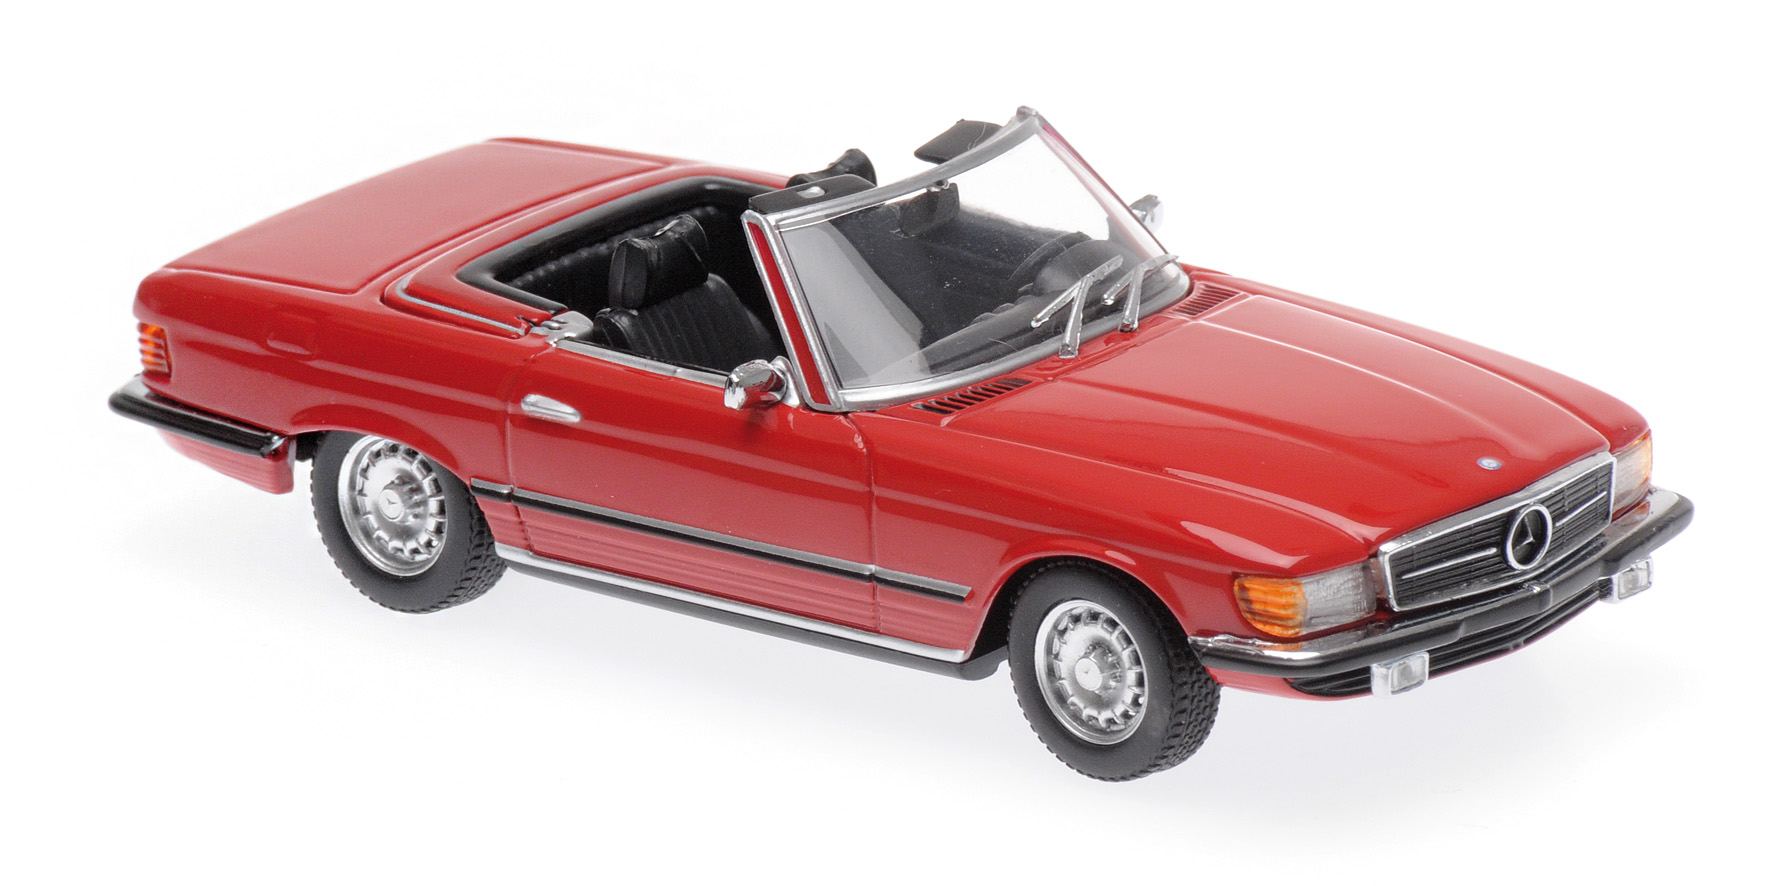 Mercedes-Benz 350 SL 1974 Red